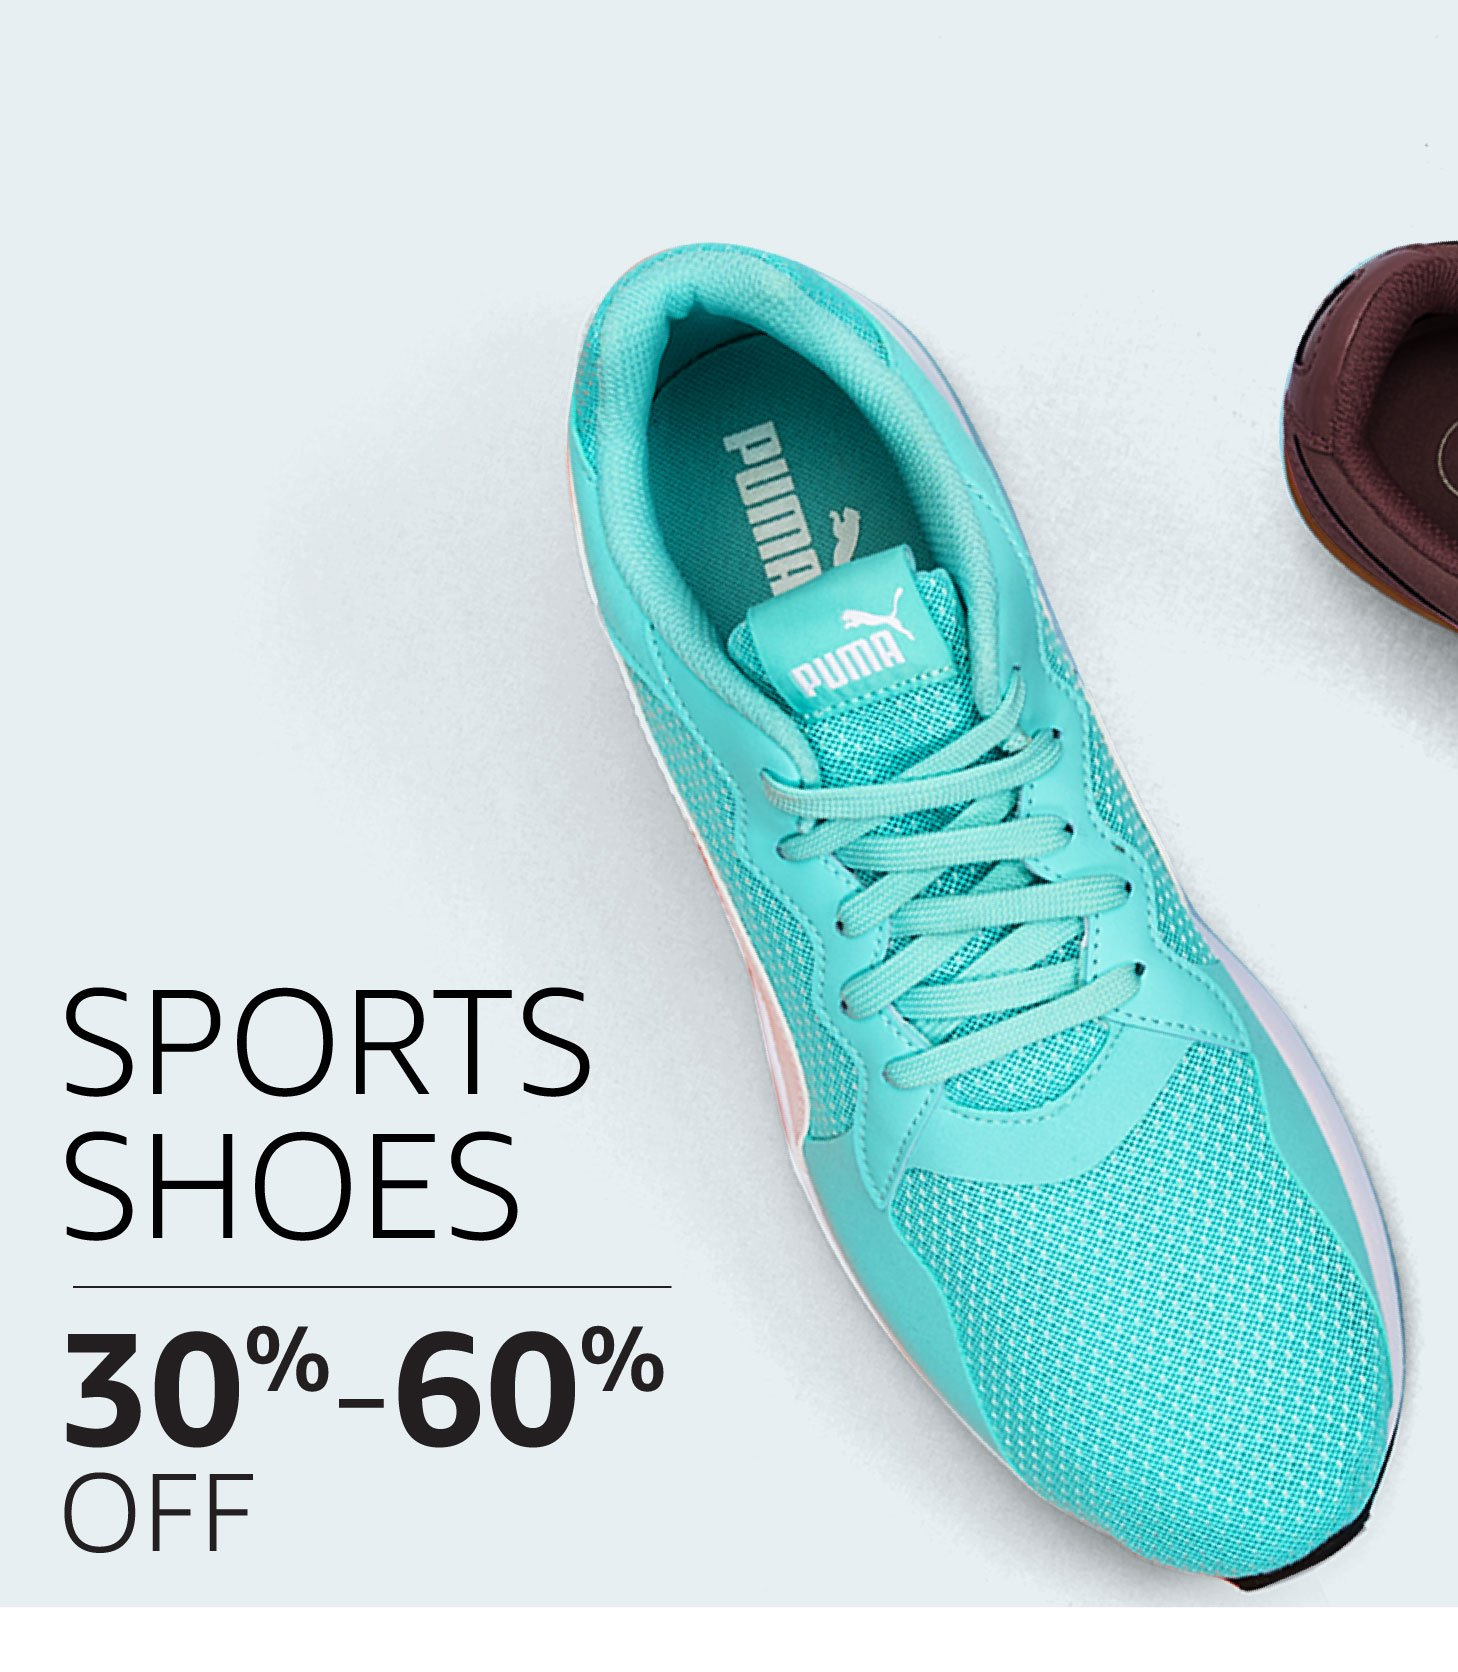 Sports Shoes: 30% to 60% off